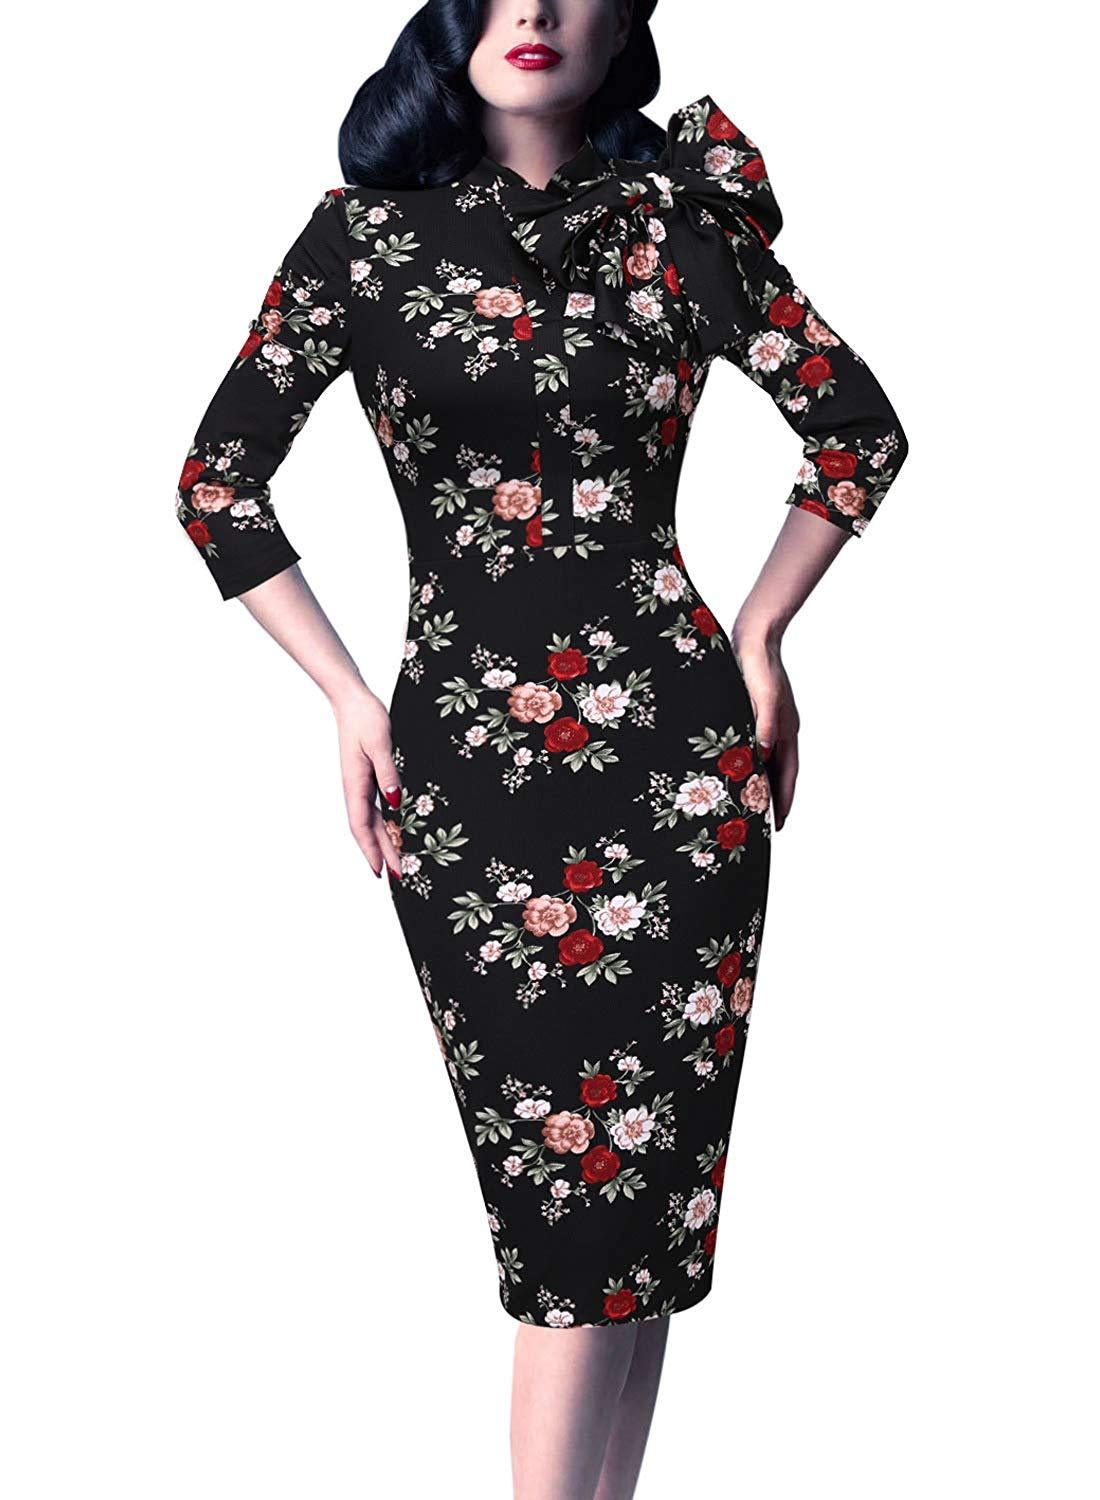 VFSHOW Womens Celebrity Vintage Bowknot Cocktail Party Stretch Bodycon Dress